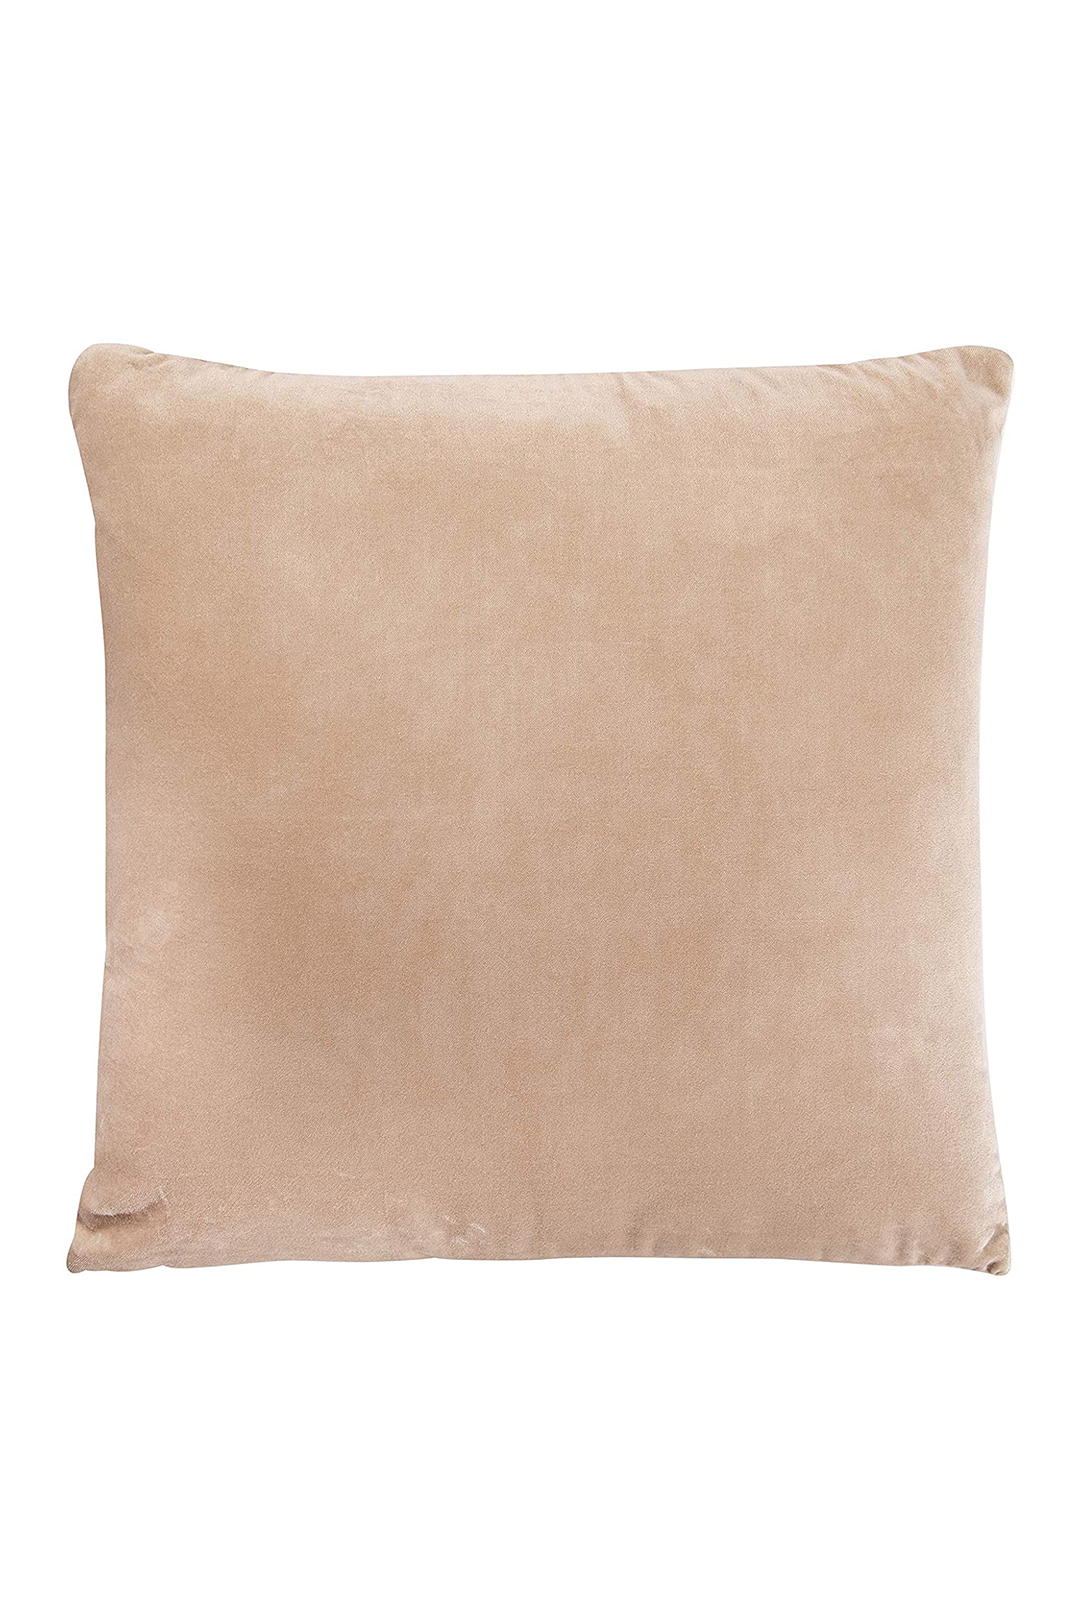 Cotton Velvet Pillow - Roasted Cashew